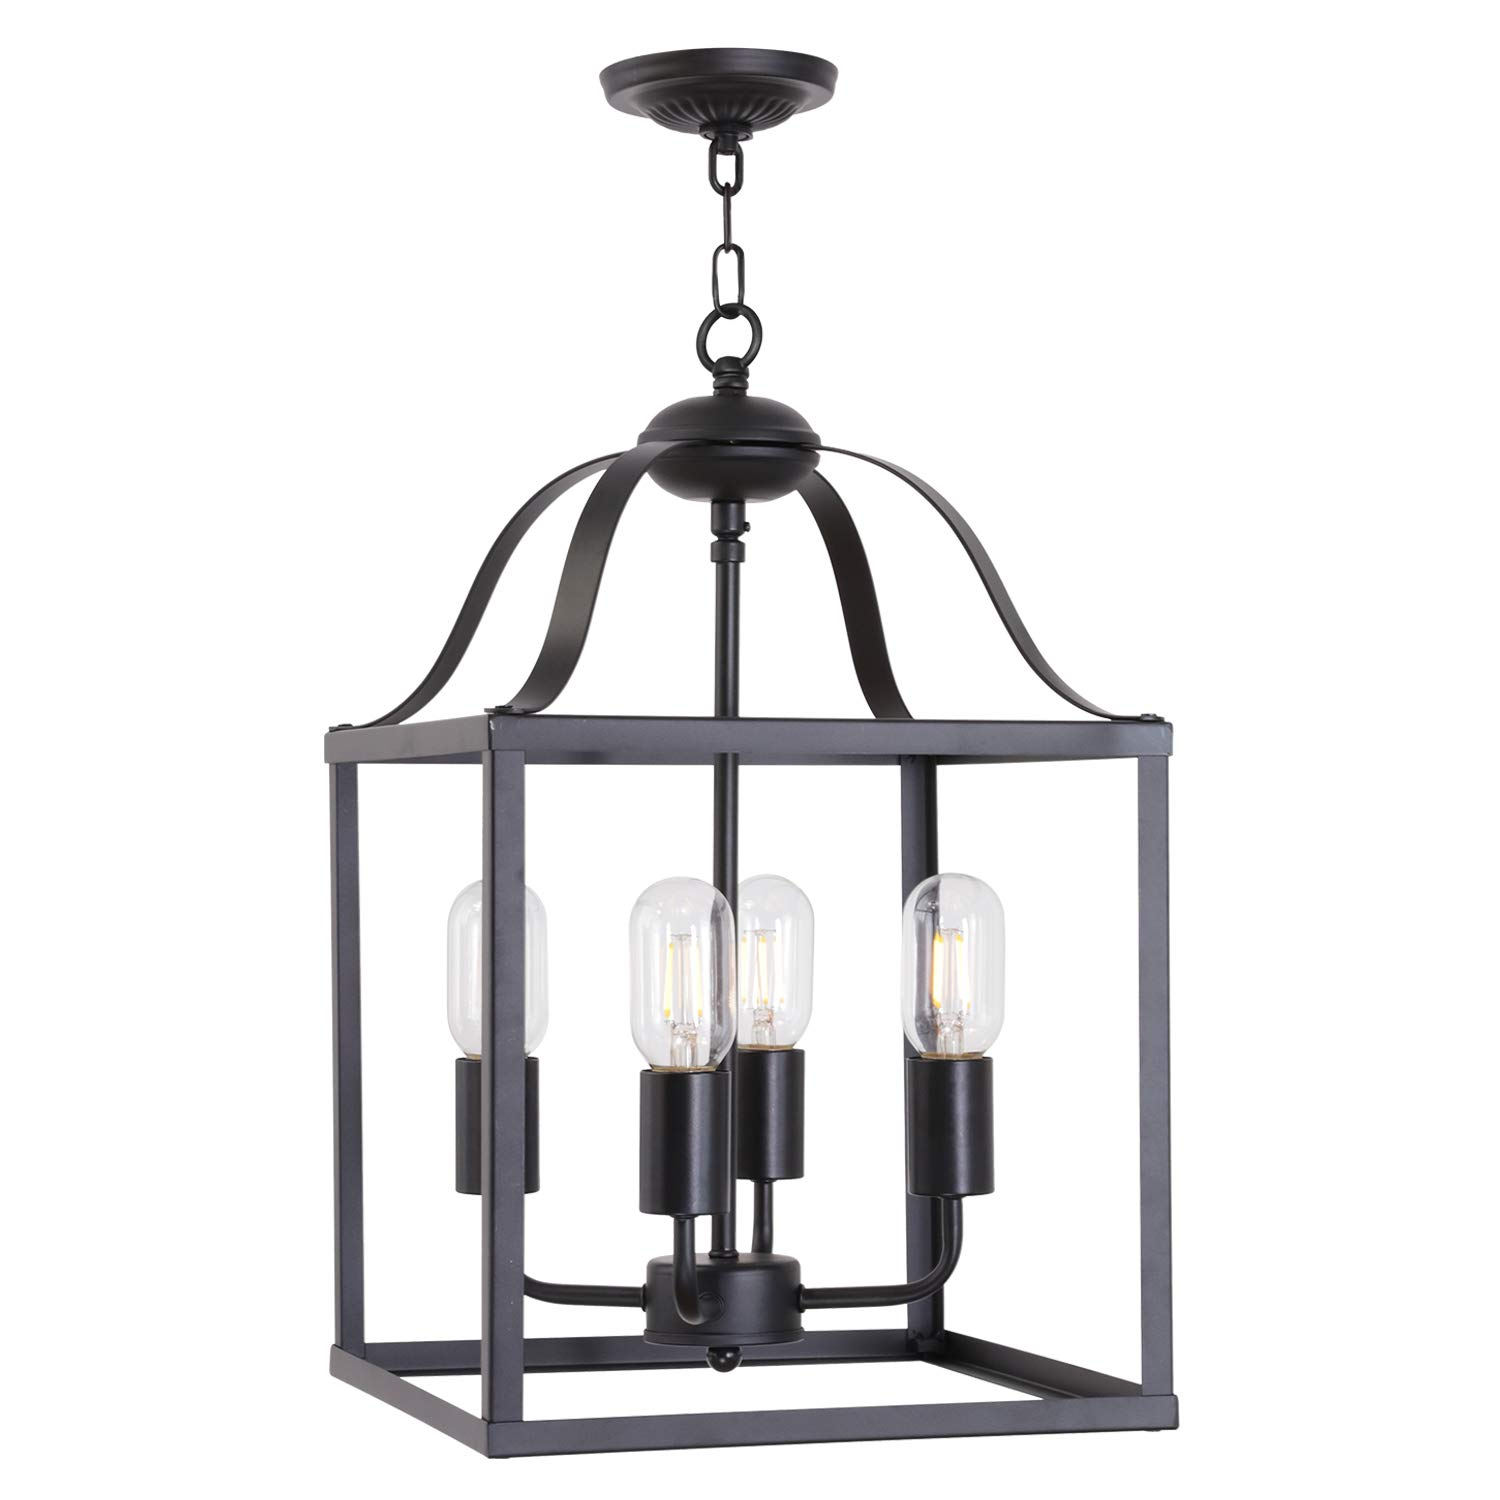 MELUCEE Lantern Chandelier 4 Lights Black Farmhouse Pendant Light, Industrial Vintage Dining Room Lighting Fixtures Hanging Kitchen Island Lighting Foyer Chandelier